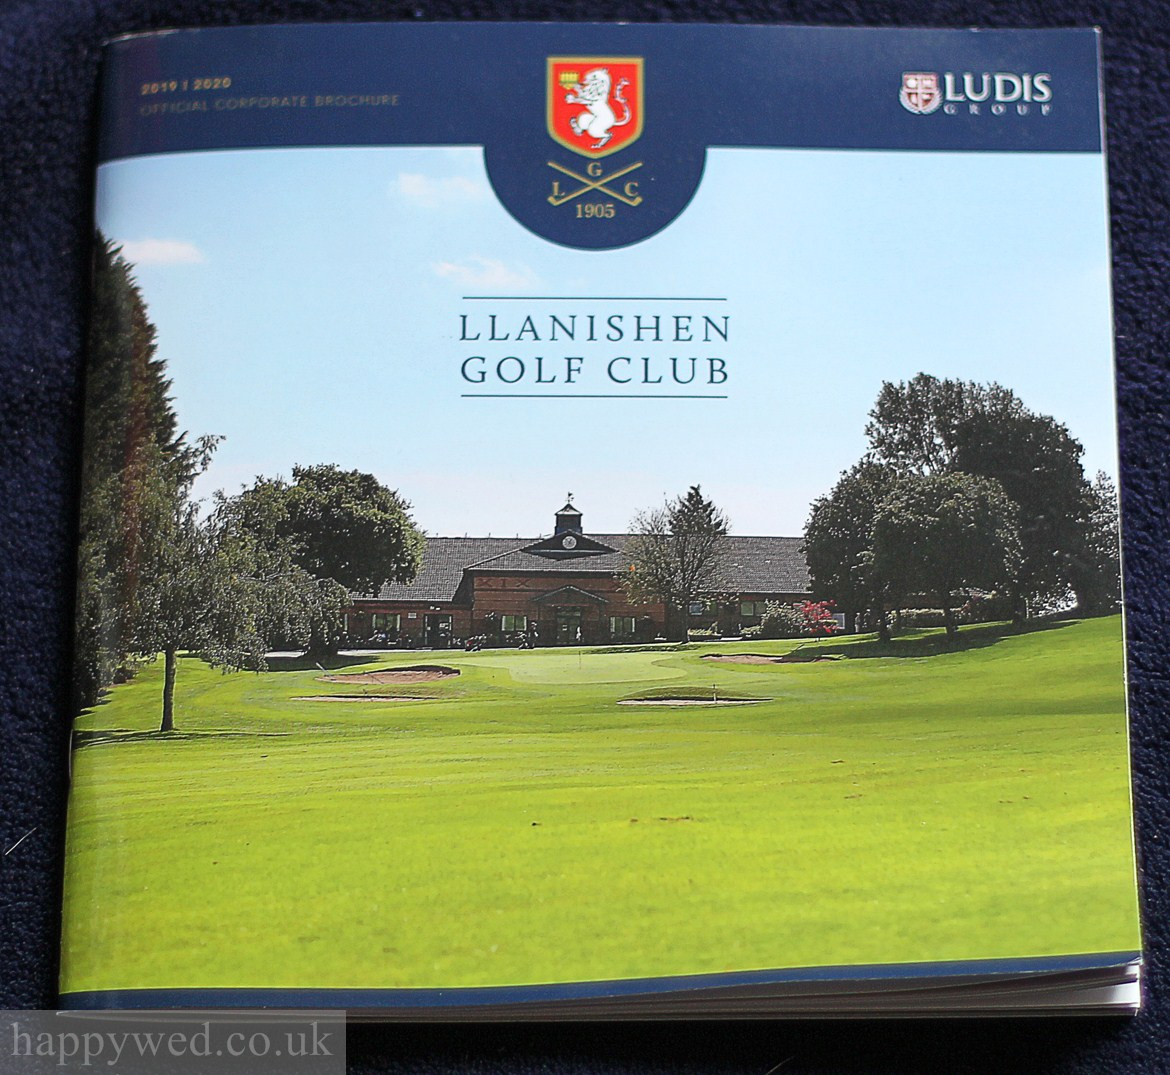 llanishen golf club annual brochure photography